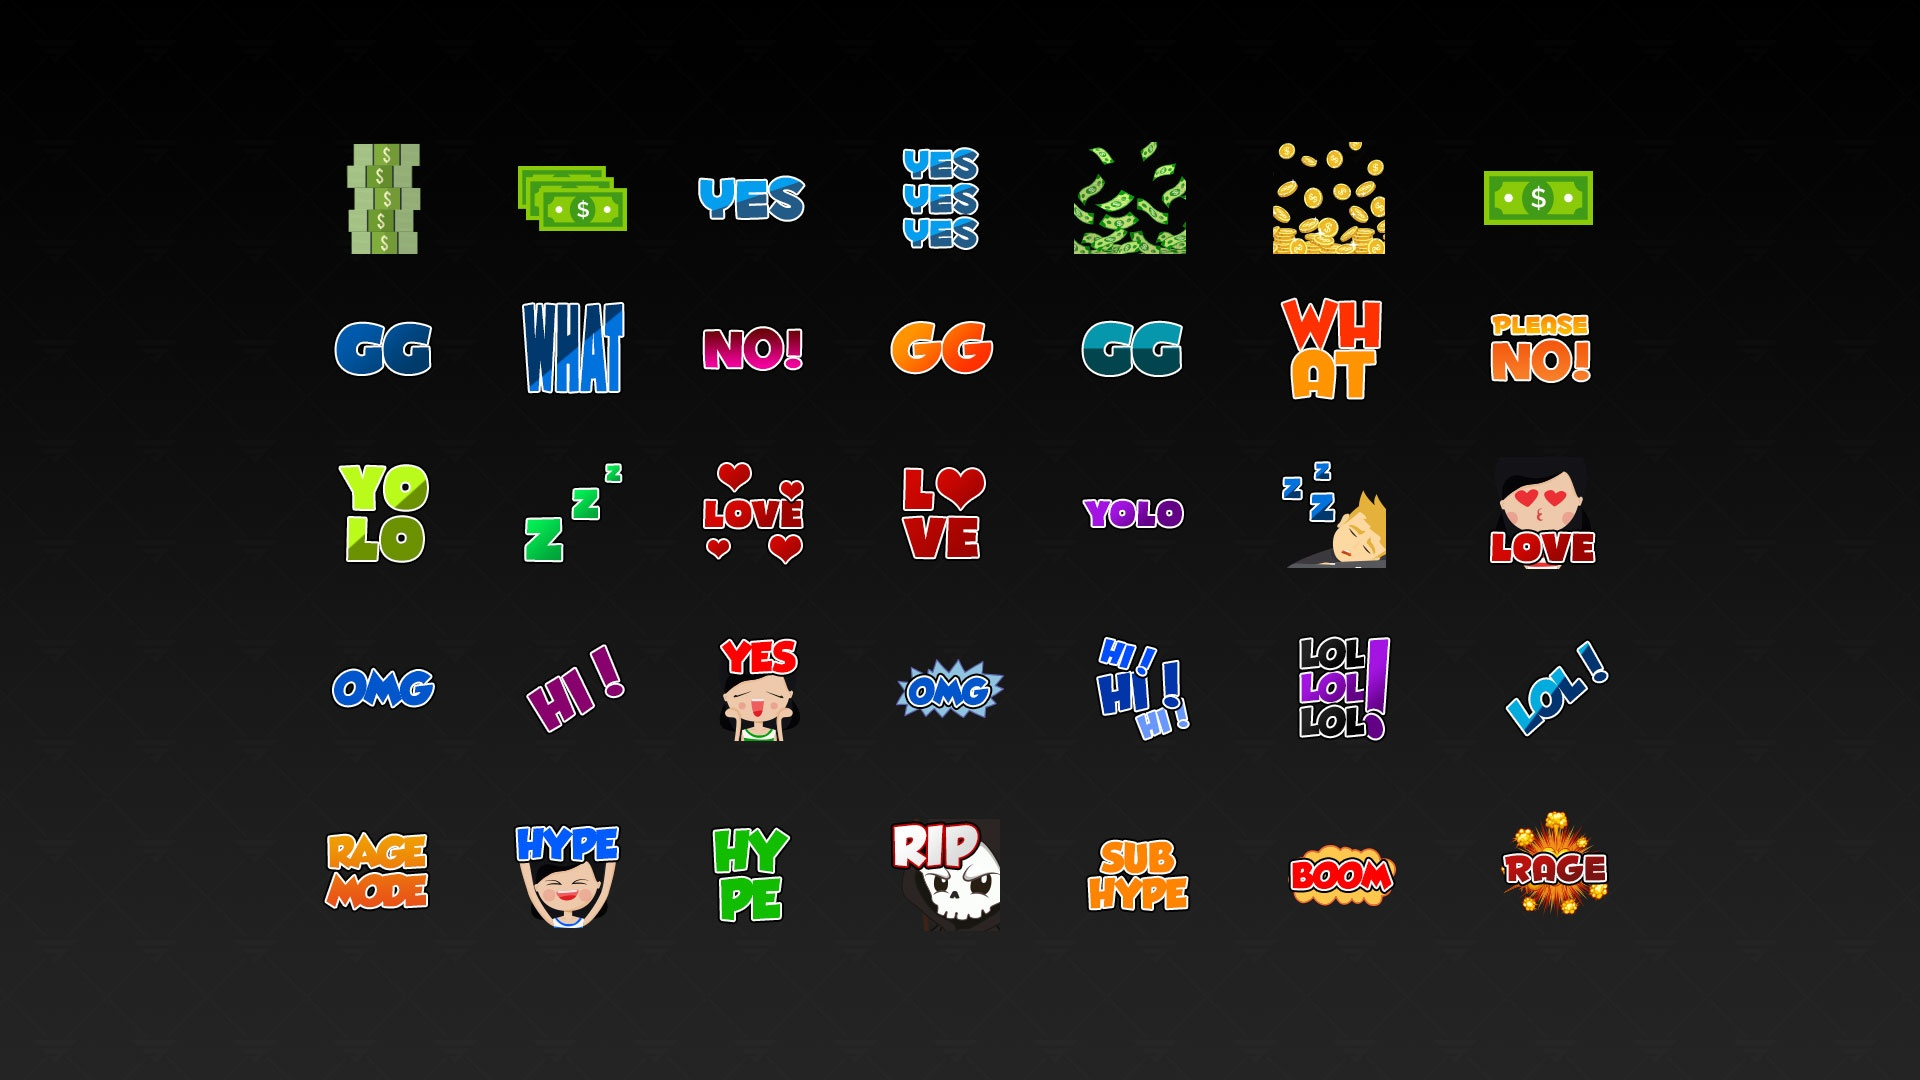 35 Different Twitch Emotes | PSD